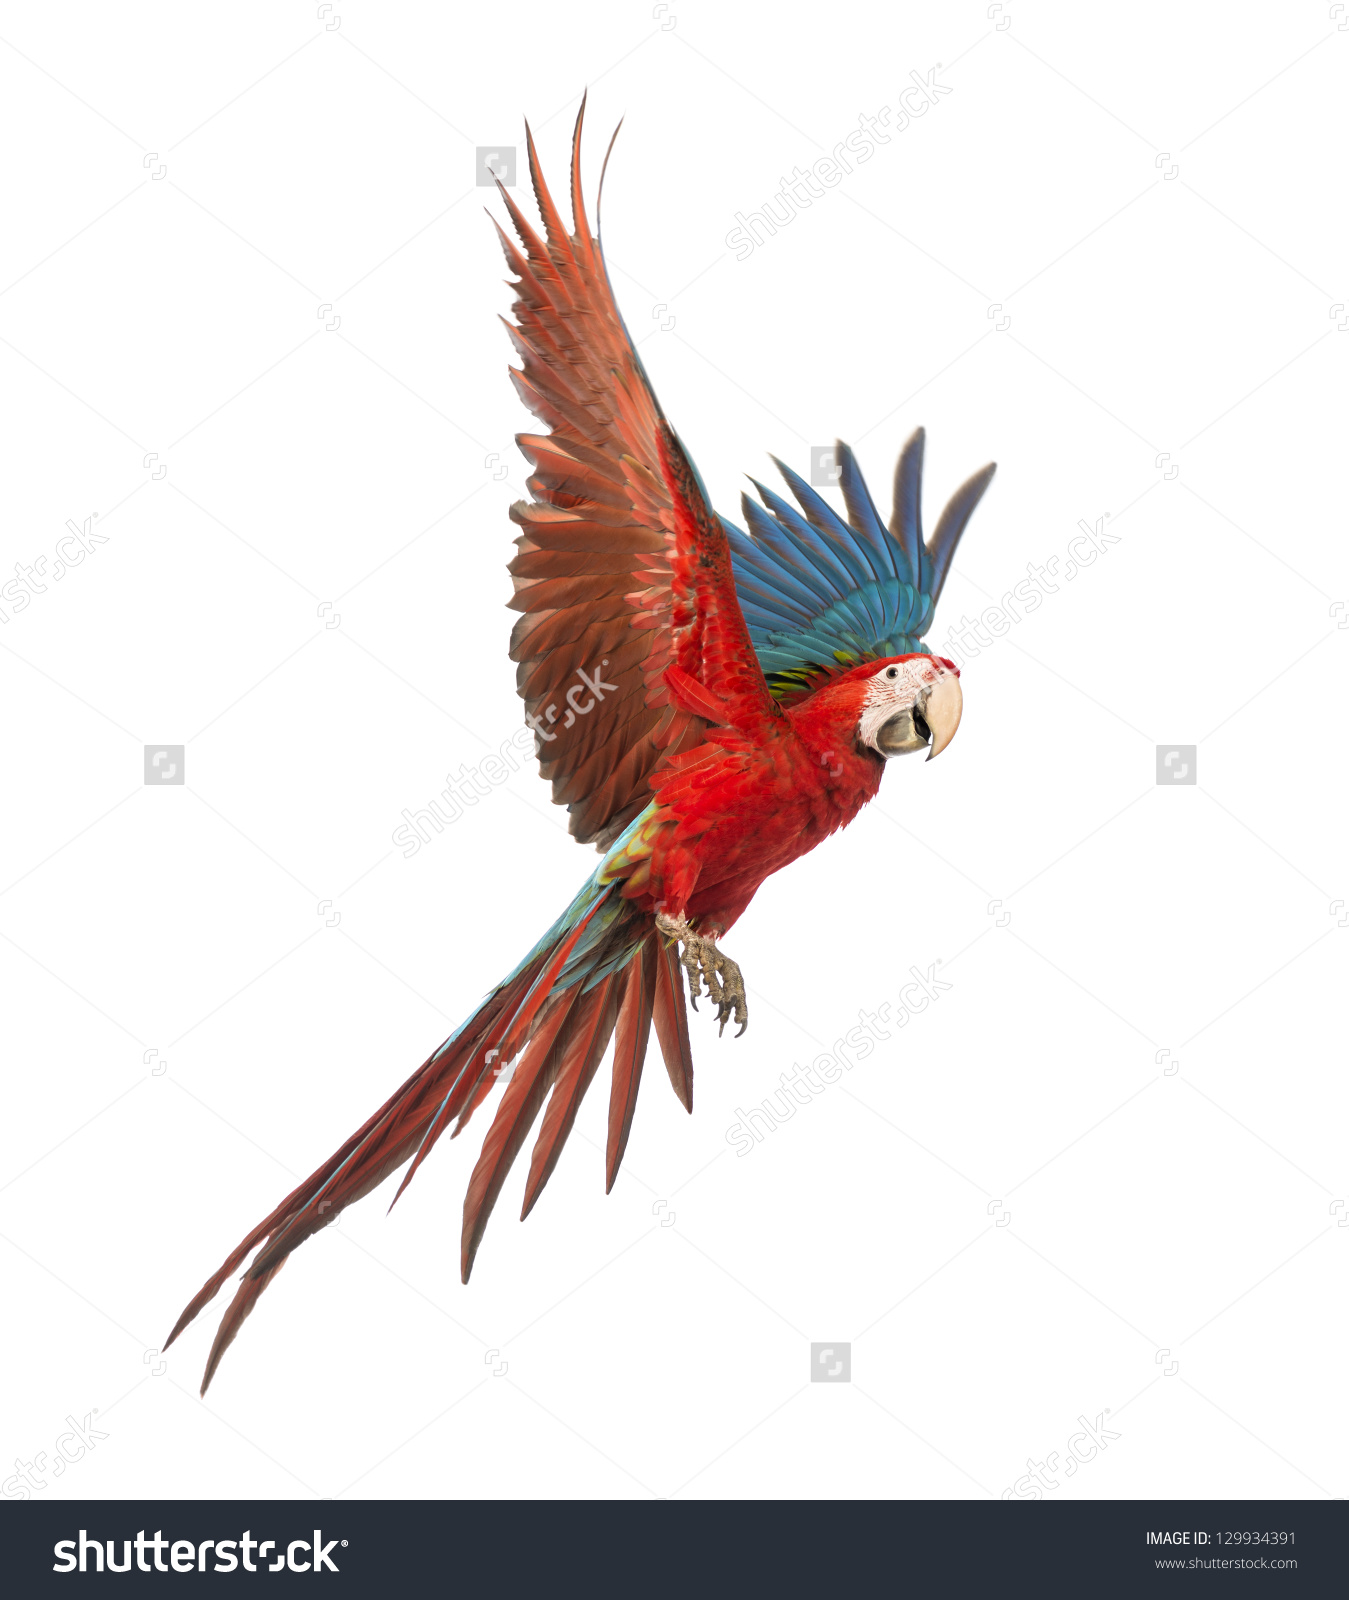 Greenwinged Macaw Ara Chloropterus 1 Year Stock Photo 129934391.